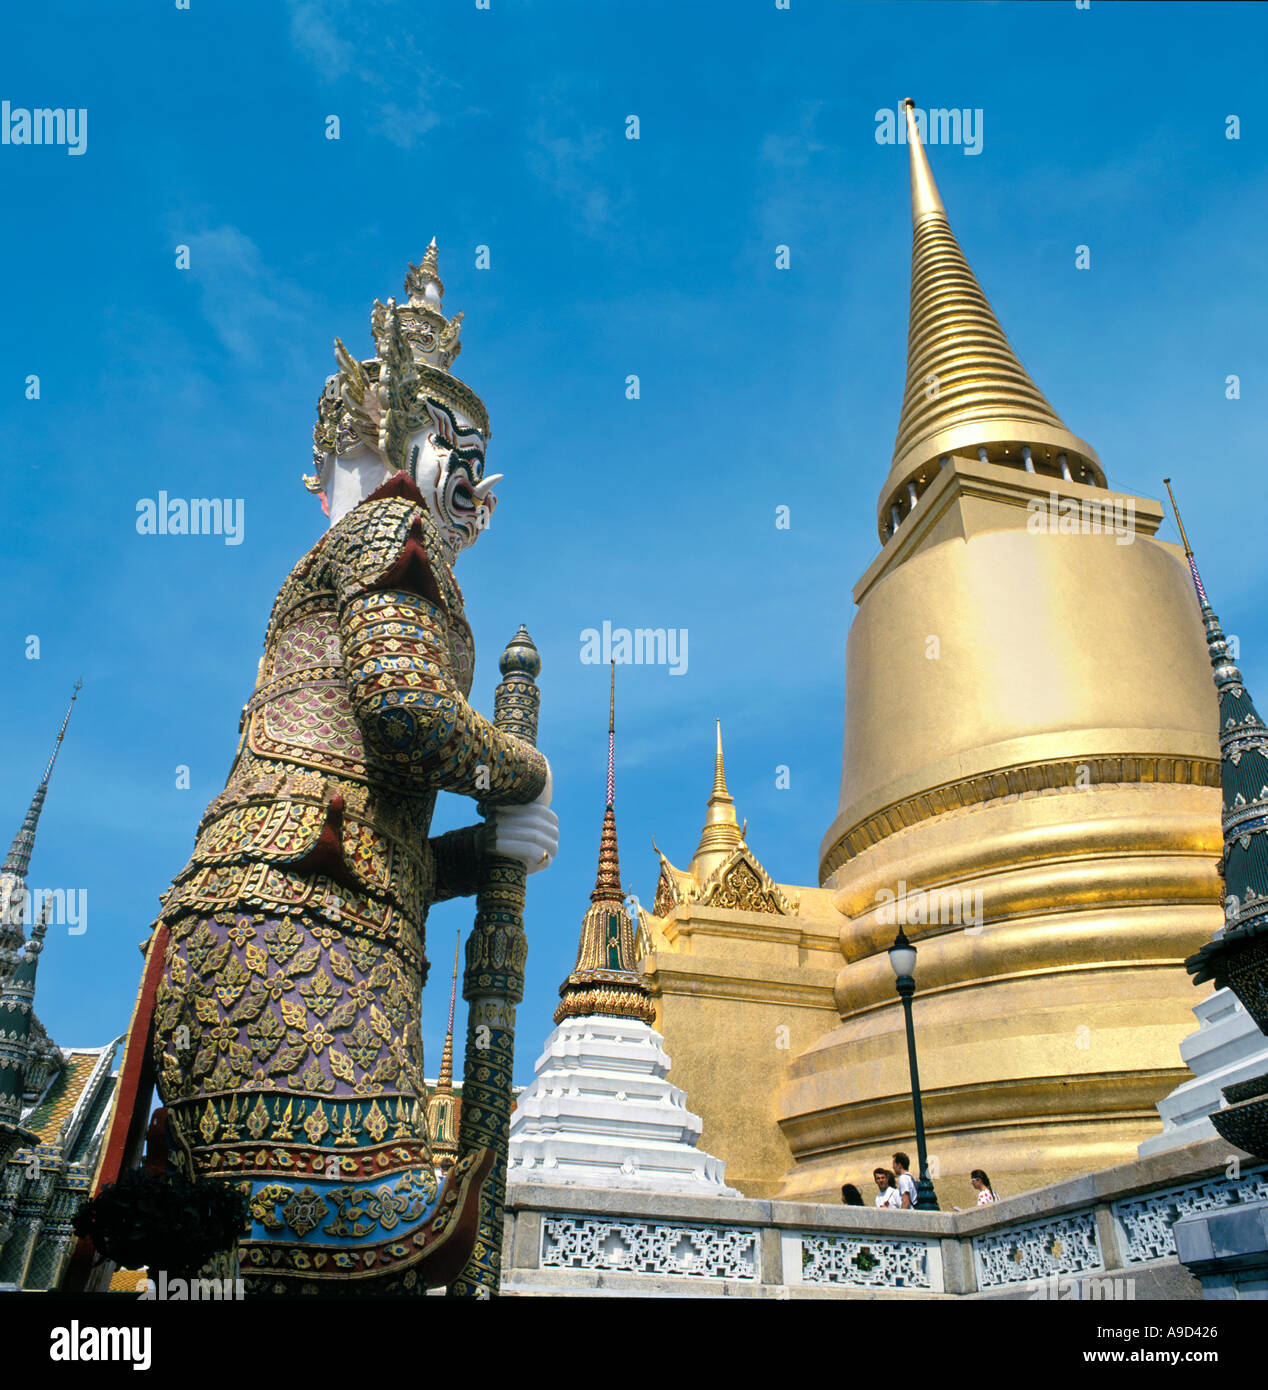 Giant statue on the upper terrace with the Phra Sri Ratana Chedi behind, Grand Palace, Bangkok, Thailand - Stock Image